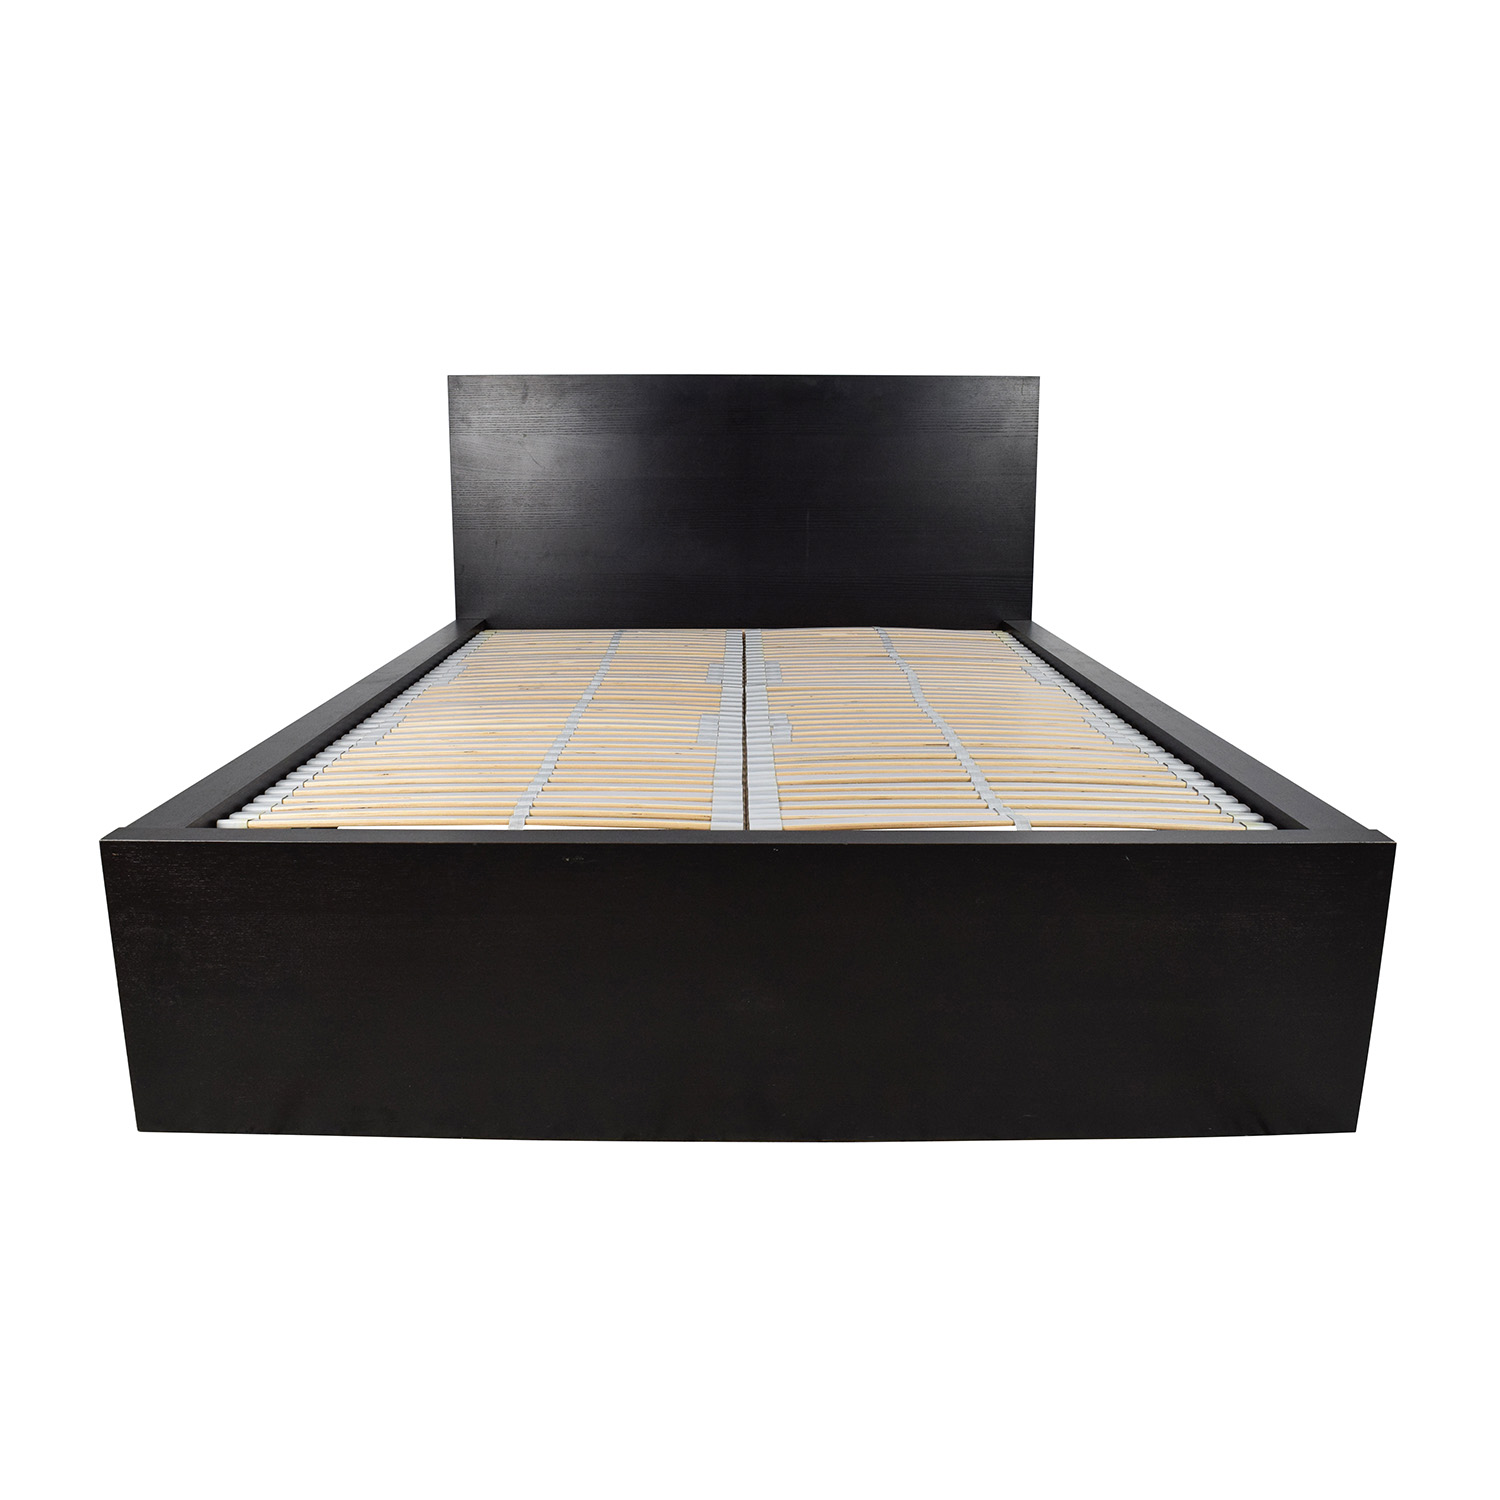 Full Bed Frame.77 Off Ikea Ikea Full Bed Frame With Adjustable Slats Beds